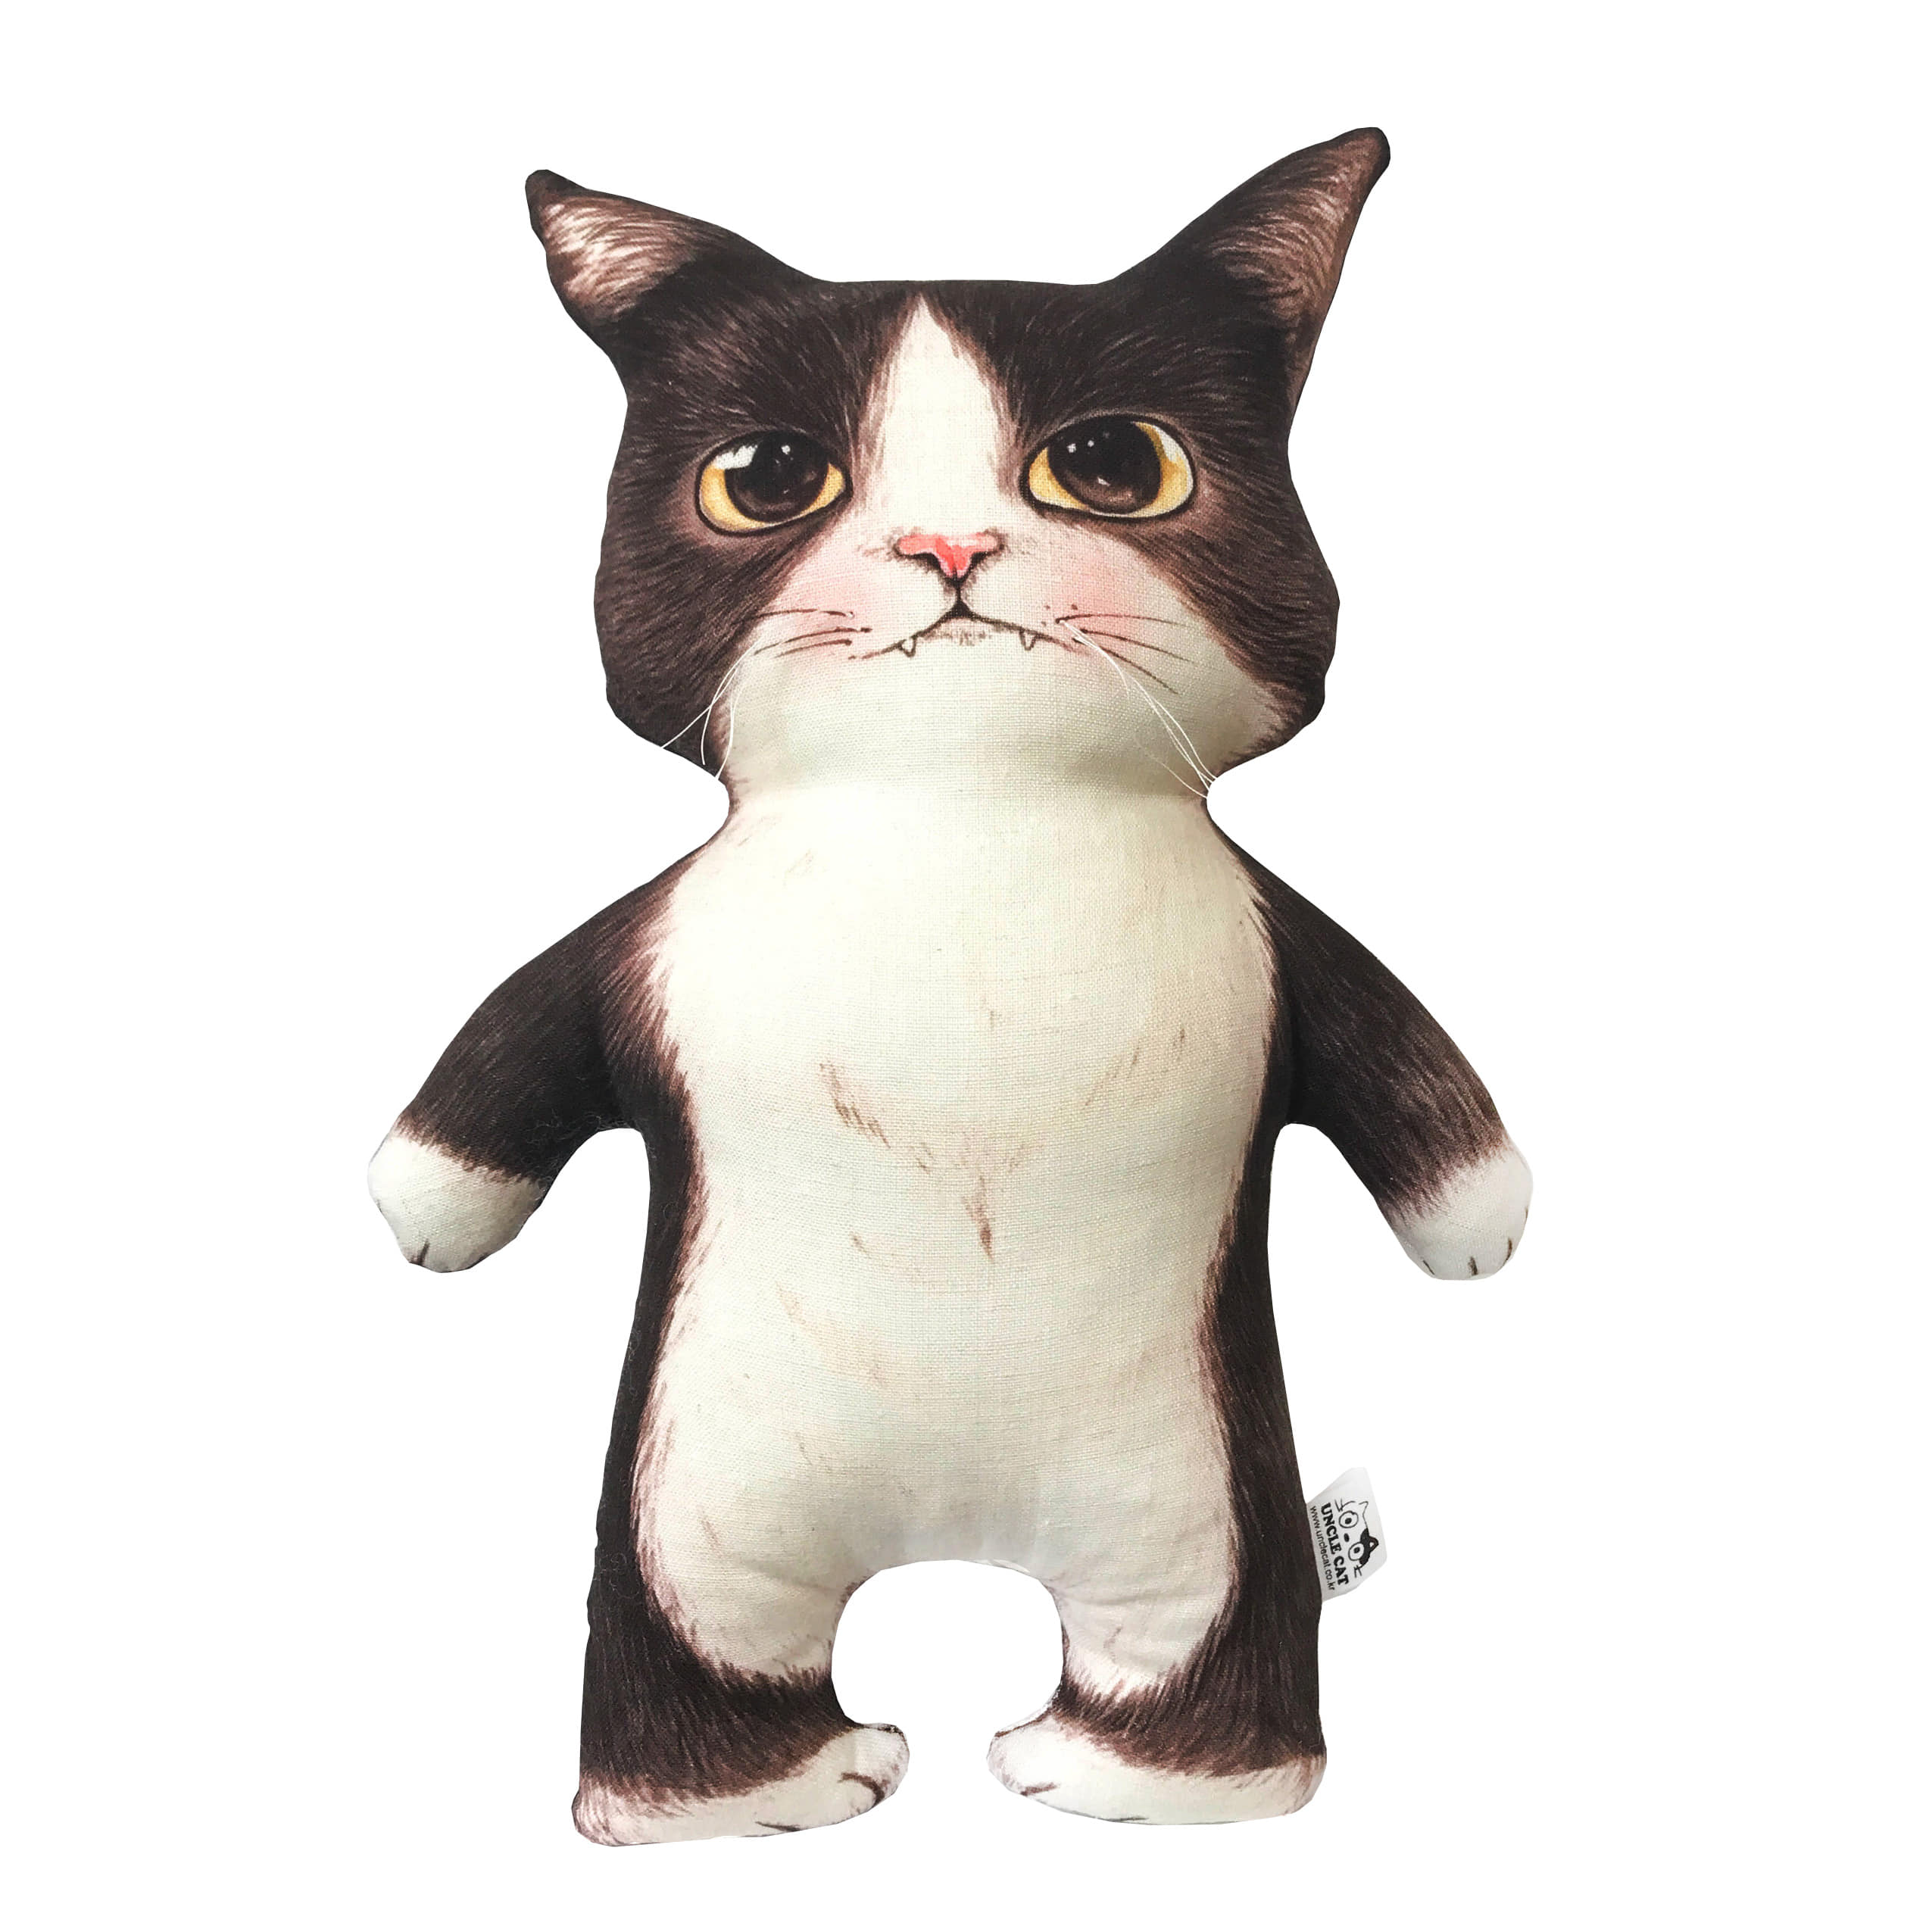 Cat doll 'JAWS' (Size : 14cm)